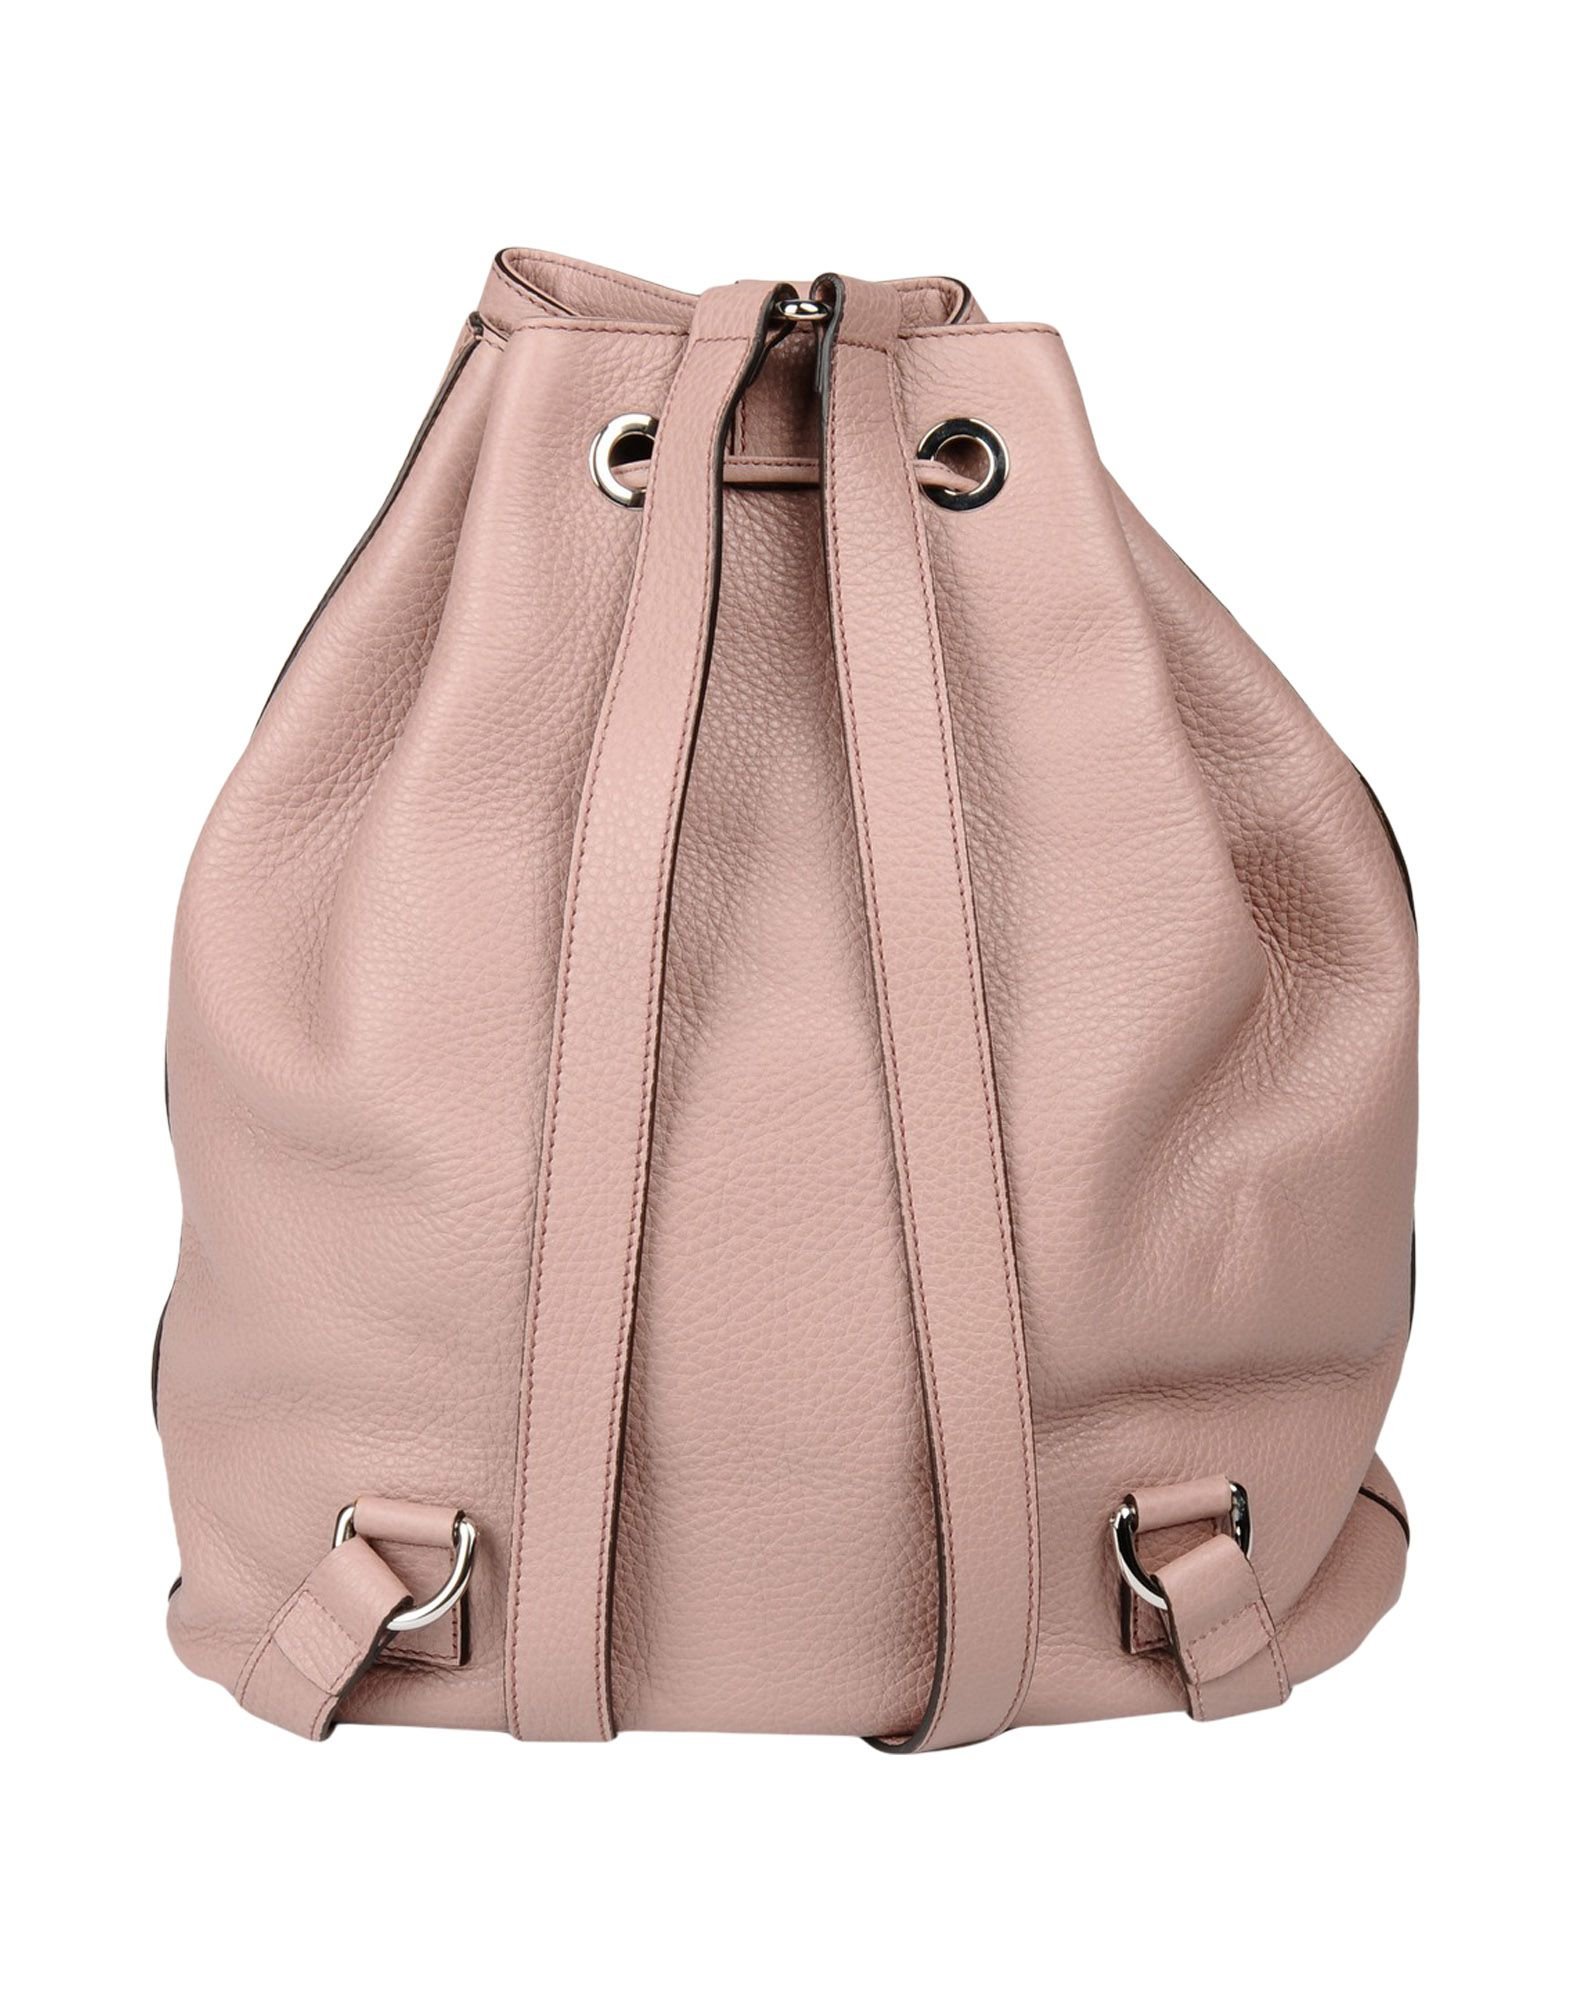 Lyst - Gucci Backpacks & Fanny Packs in Pink